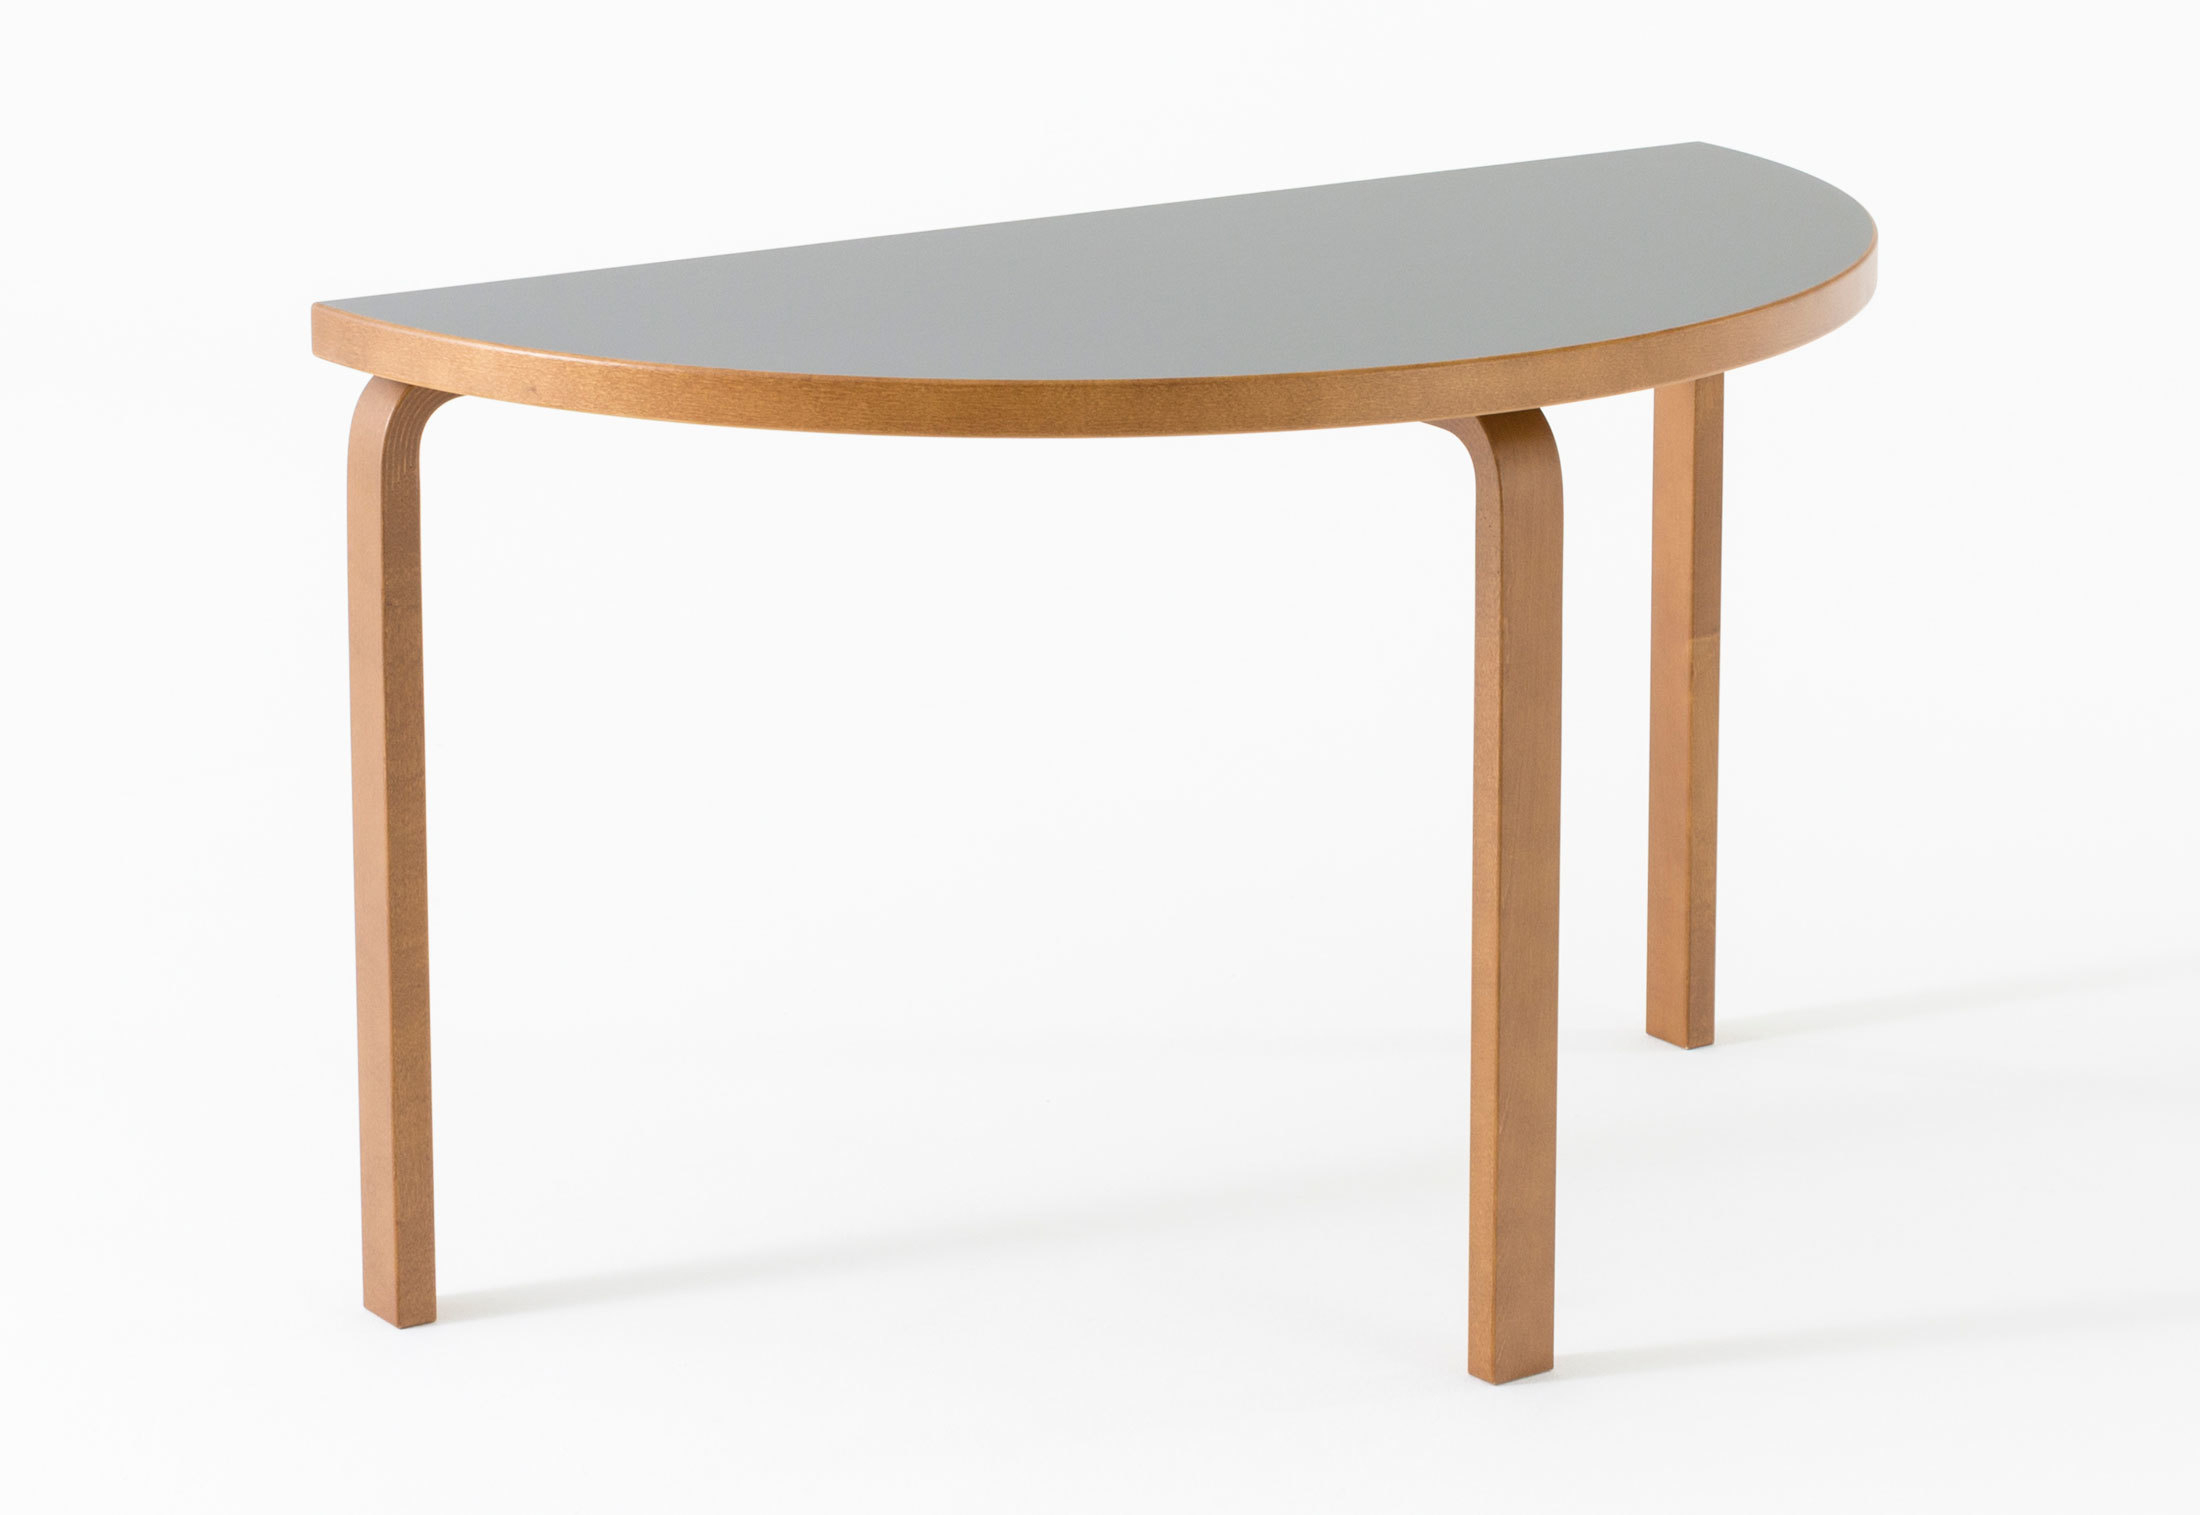 Table 95artek | Stylepark Intended For Natural 2 Door Plasma Console Tables (View 14 of 30)